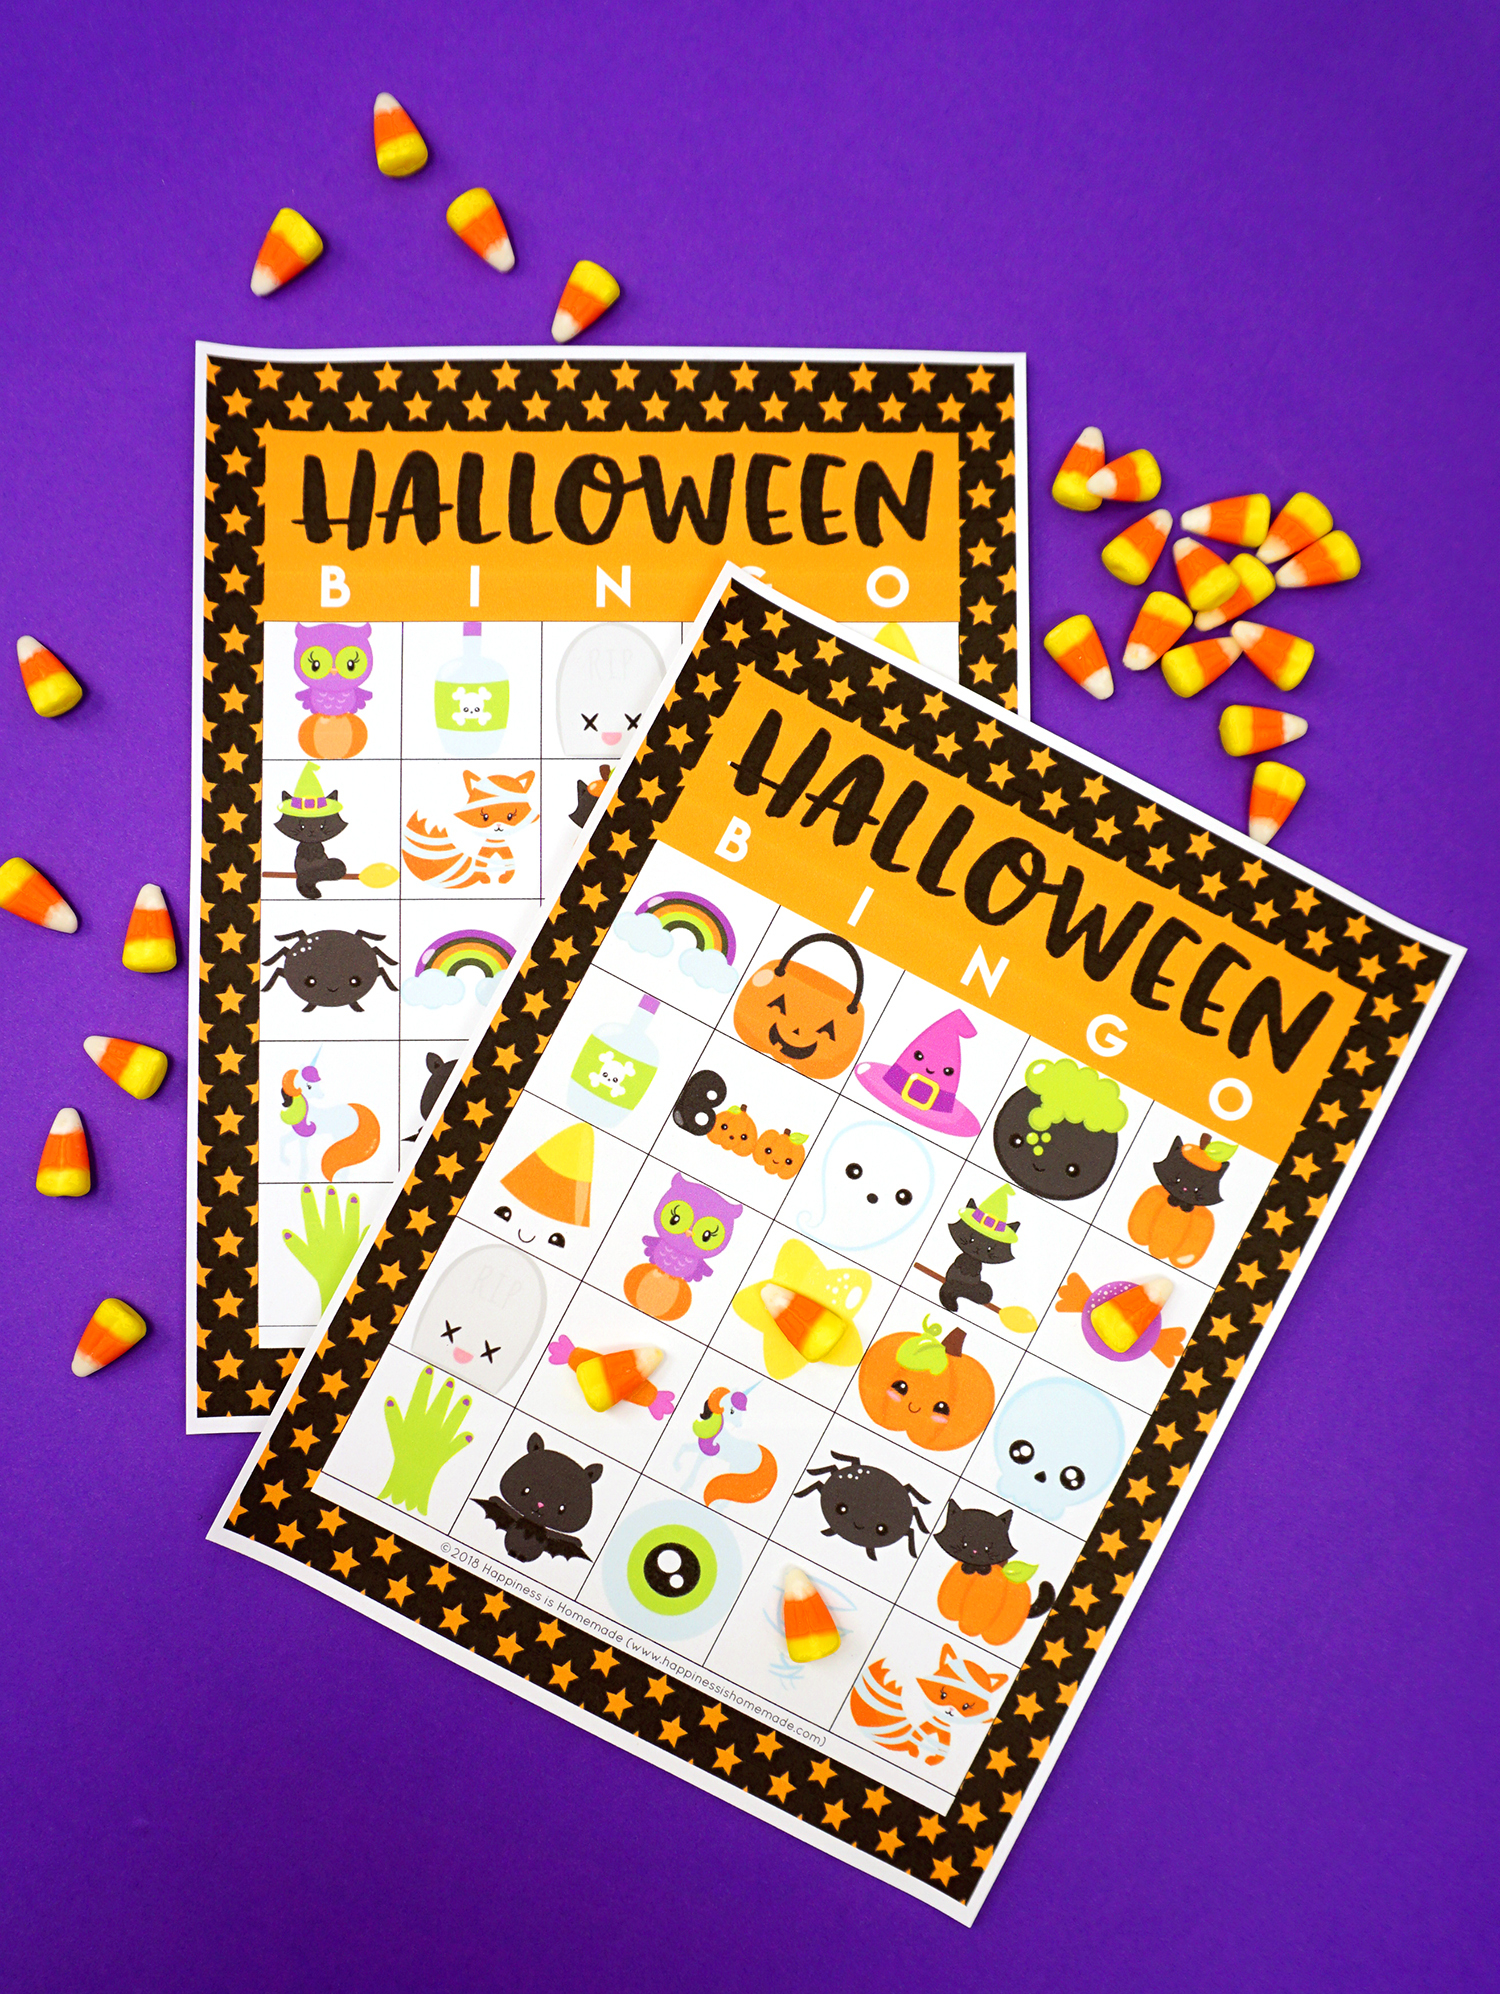 Printable Halloween Bingo Game Cards - Happiness Is Homemade